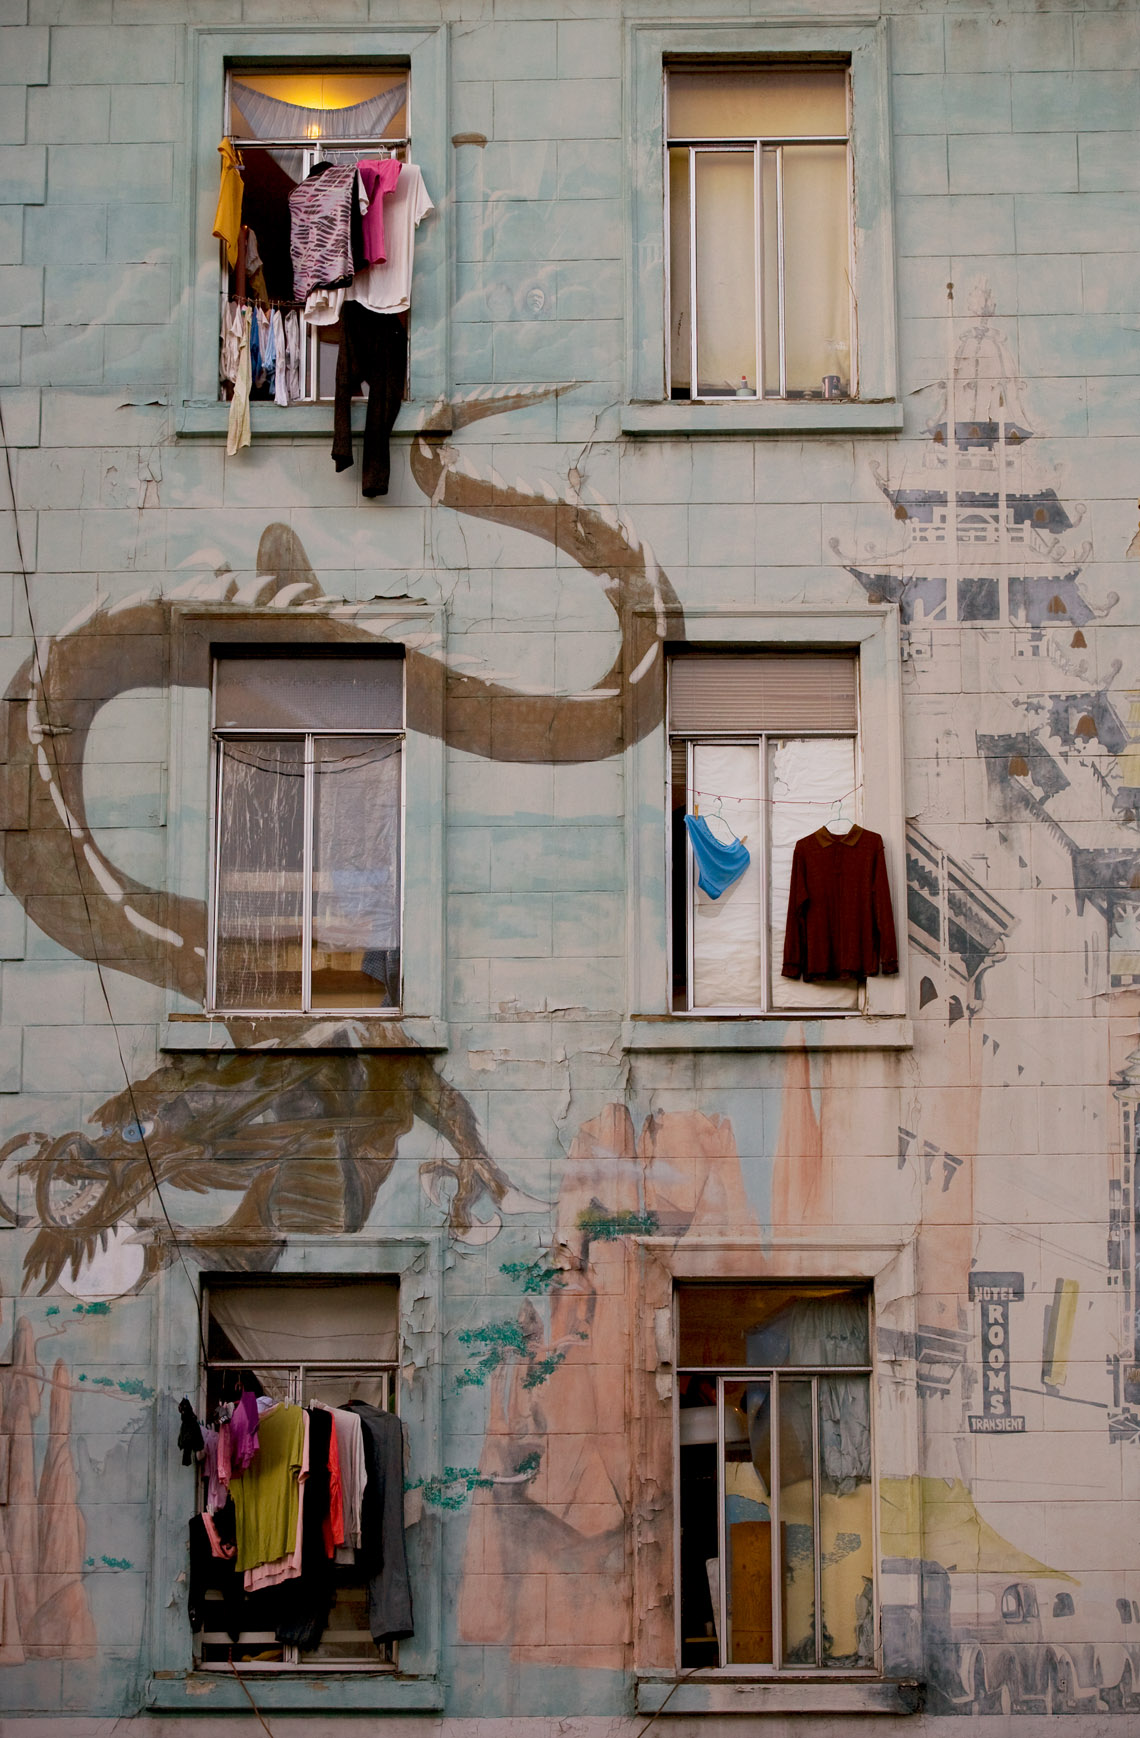 Kris_Davidson_National_Geographic_SanFrancisco_12